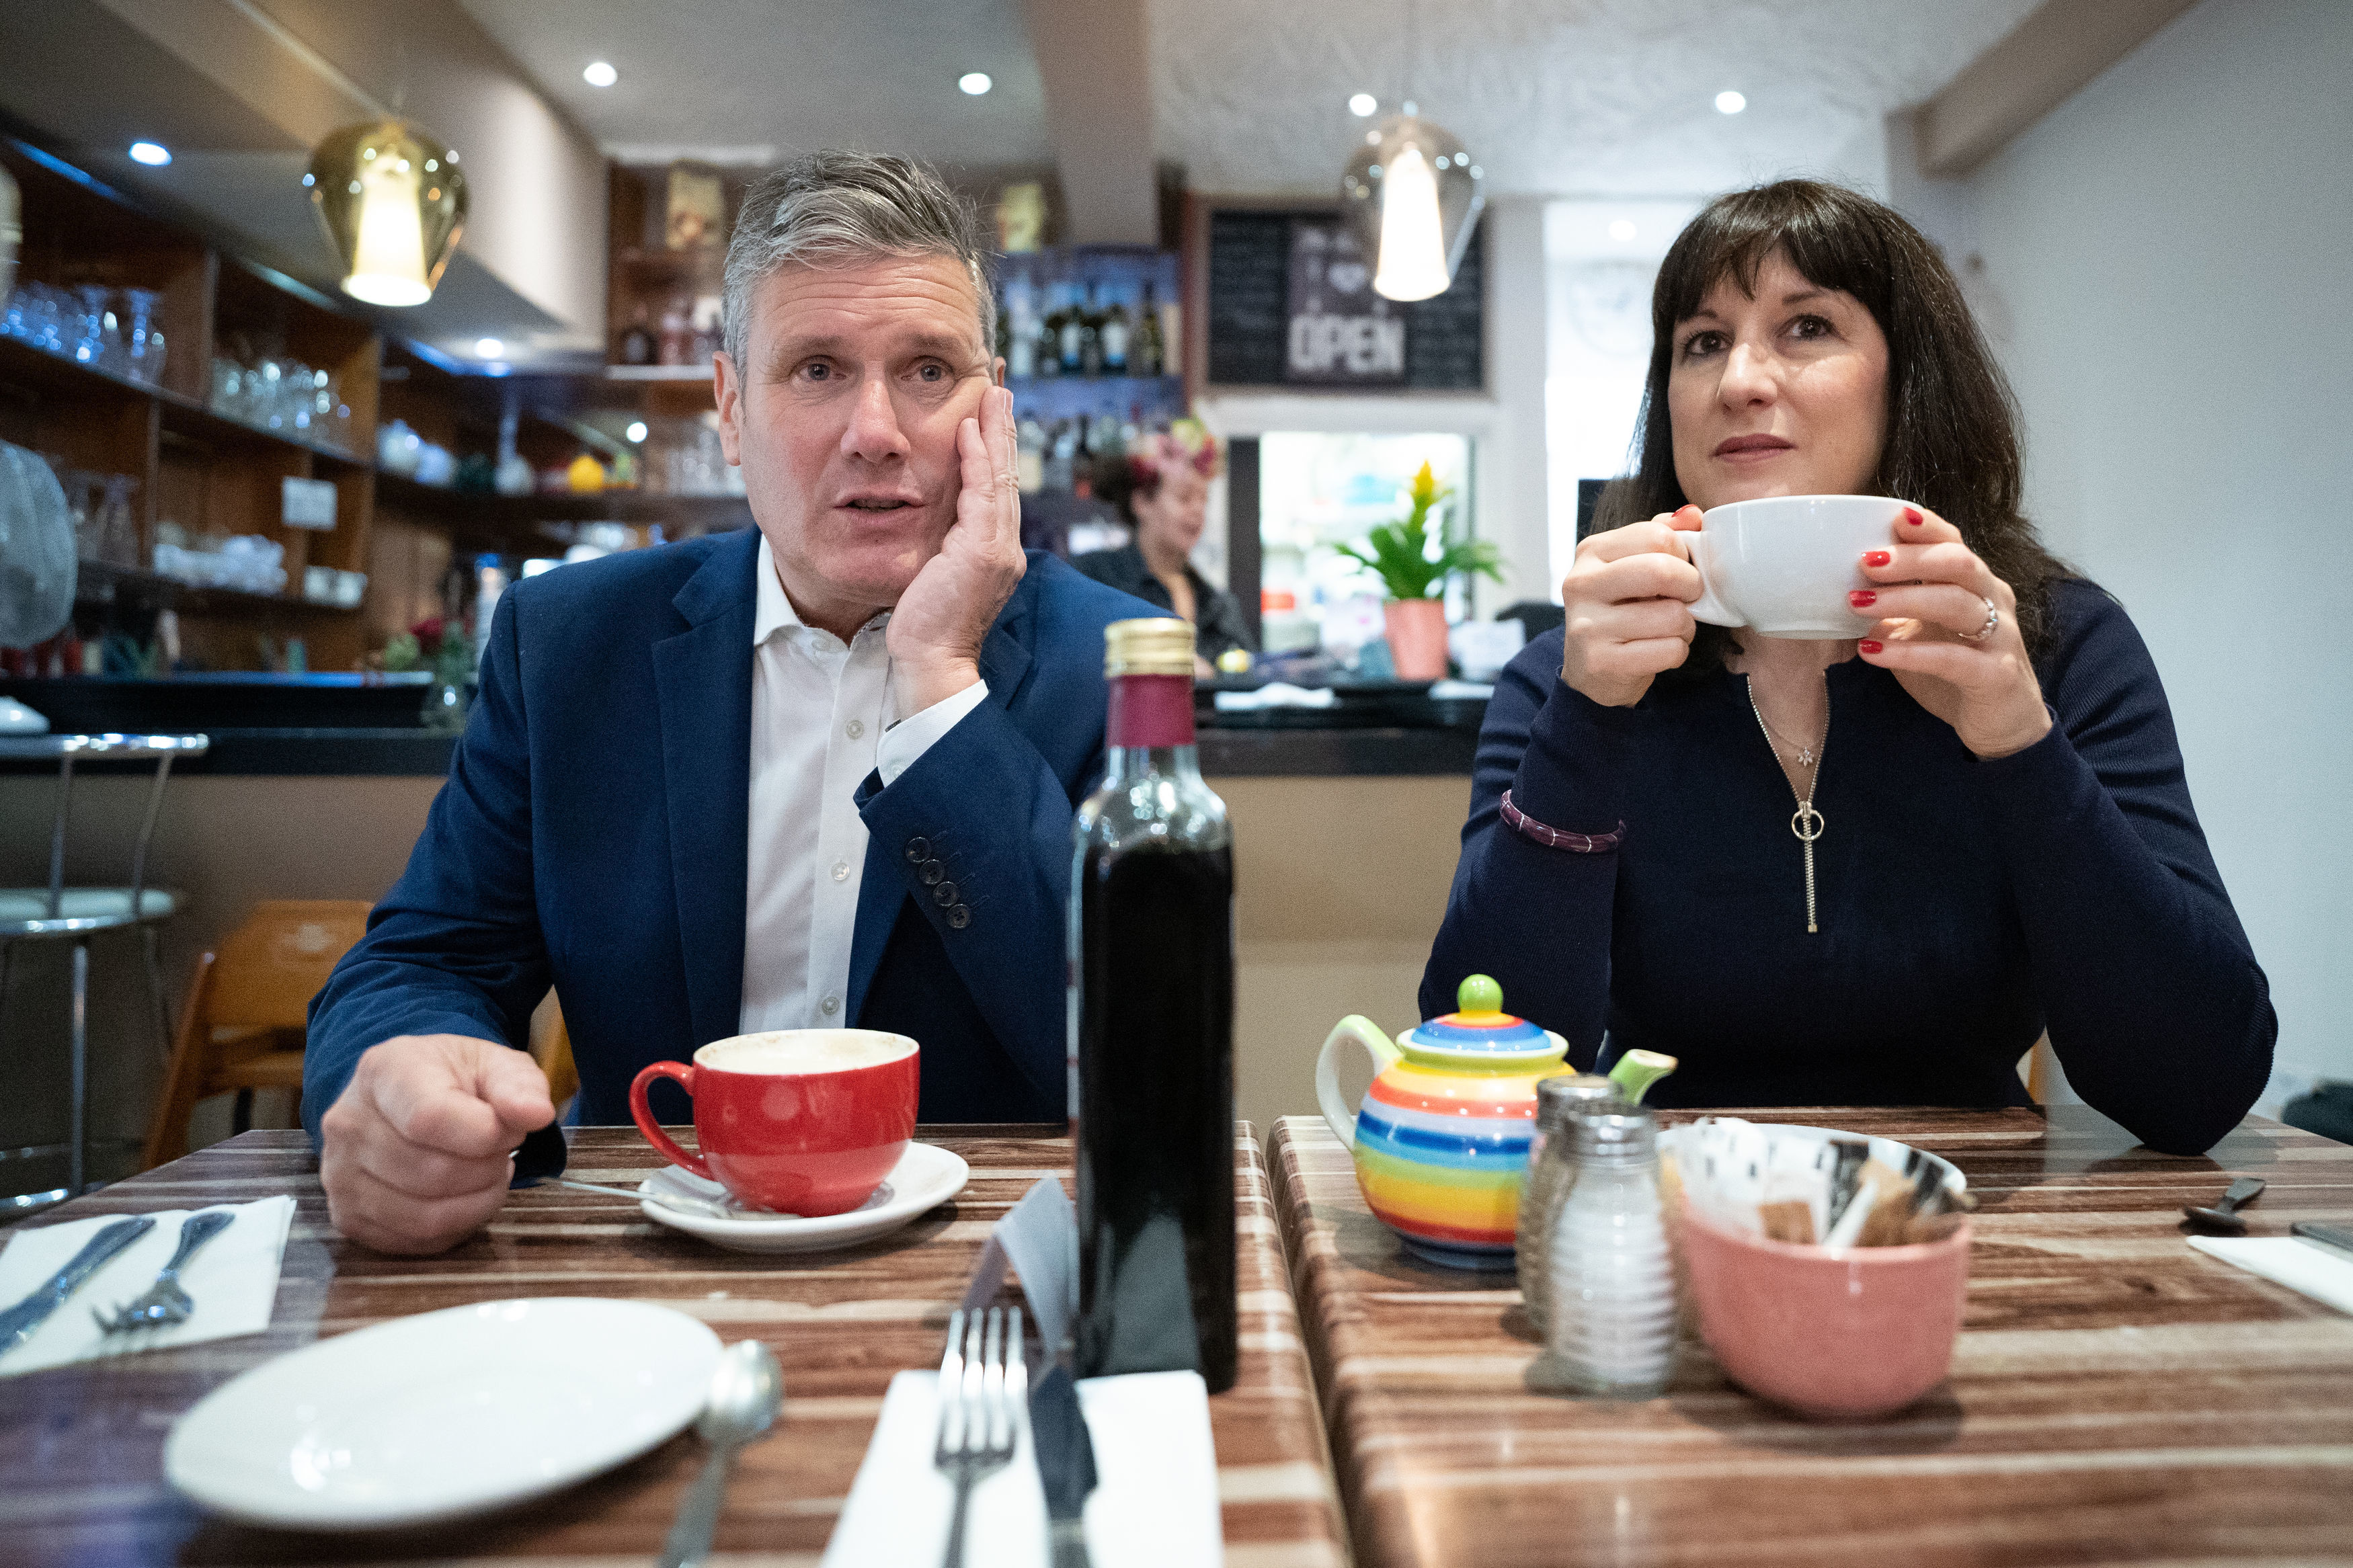 <p>Labour Party leader Sir Keir Starmer and shadow chancellor Rachel Reeves during a visit to businesses in Hove, East Sussex where they met shop keepers and local people before attending the second day of the Labour Party annual conference in Brighton. Picture date: Sunday September 26, 2021.</p>